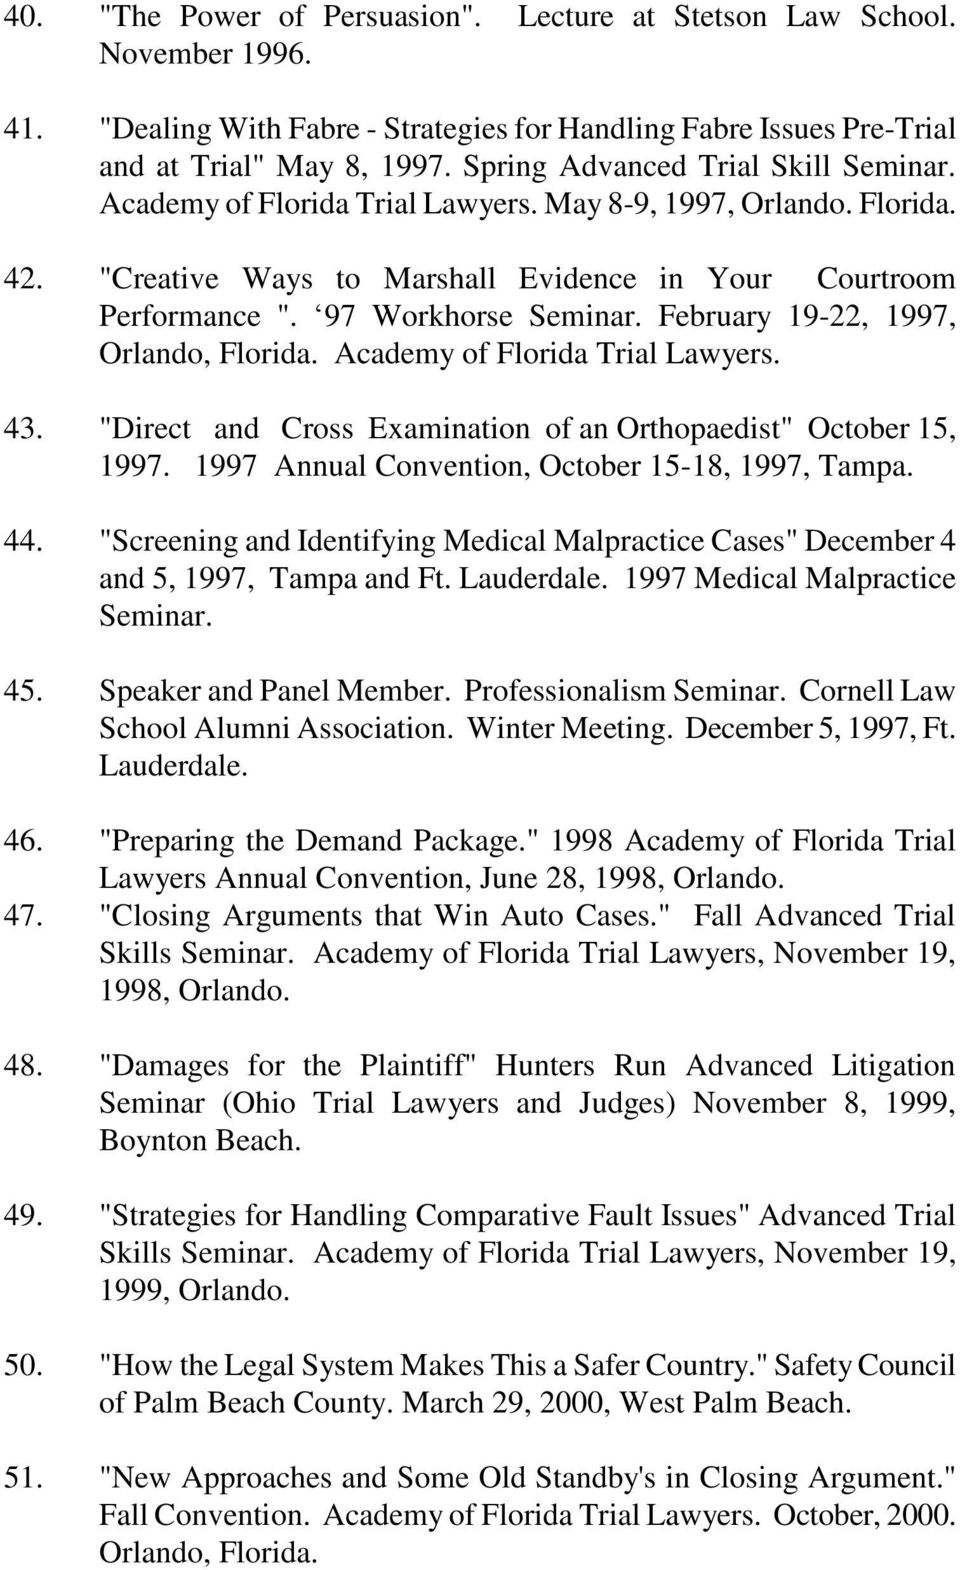 "February 19-22, 1997, Orlando, Florida. Academy of Florida Trial Lawyers. 43. ""Direct and Cross Examination of an Orthopaedist"" October 15, 1997. 1997 Annual Convention, October 15-18, 1997, Tampa."